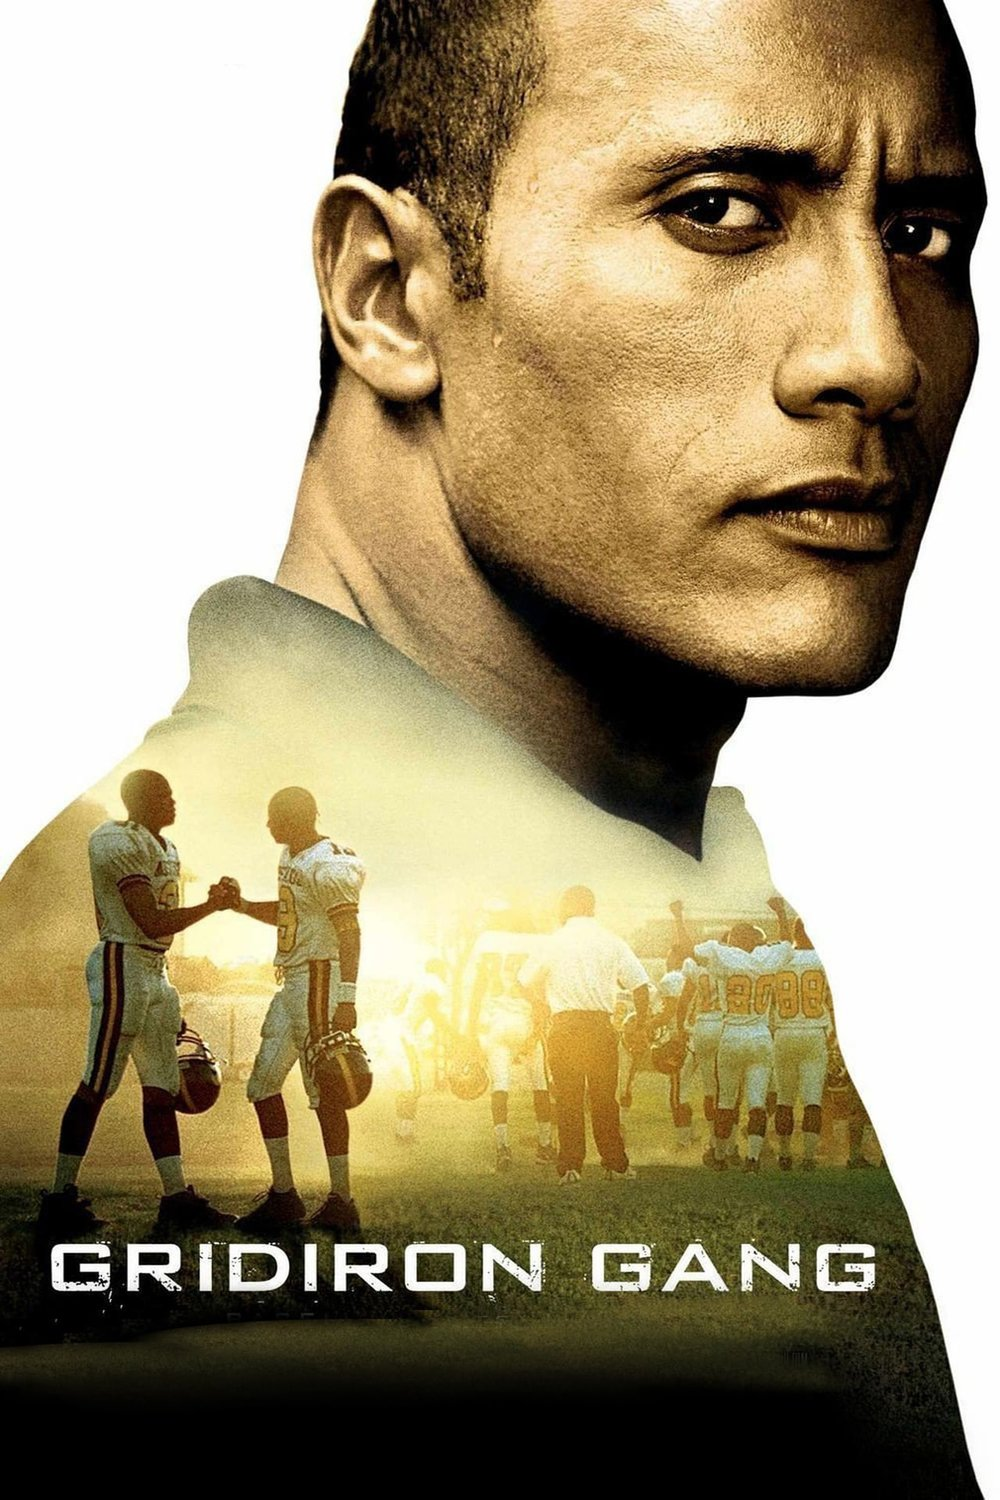 Gridiron Gang by Phil Joanou